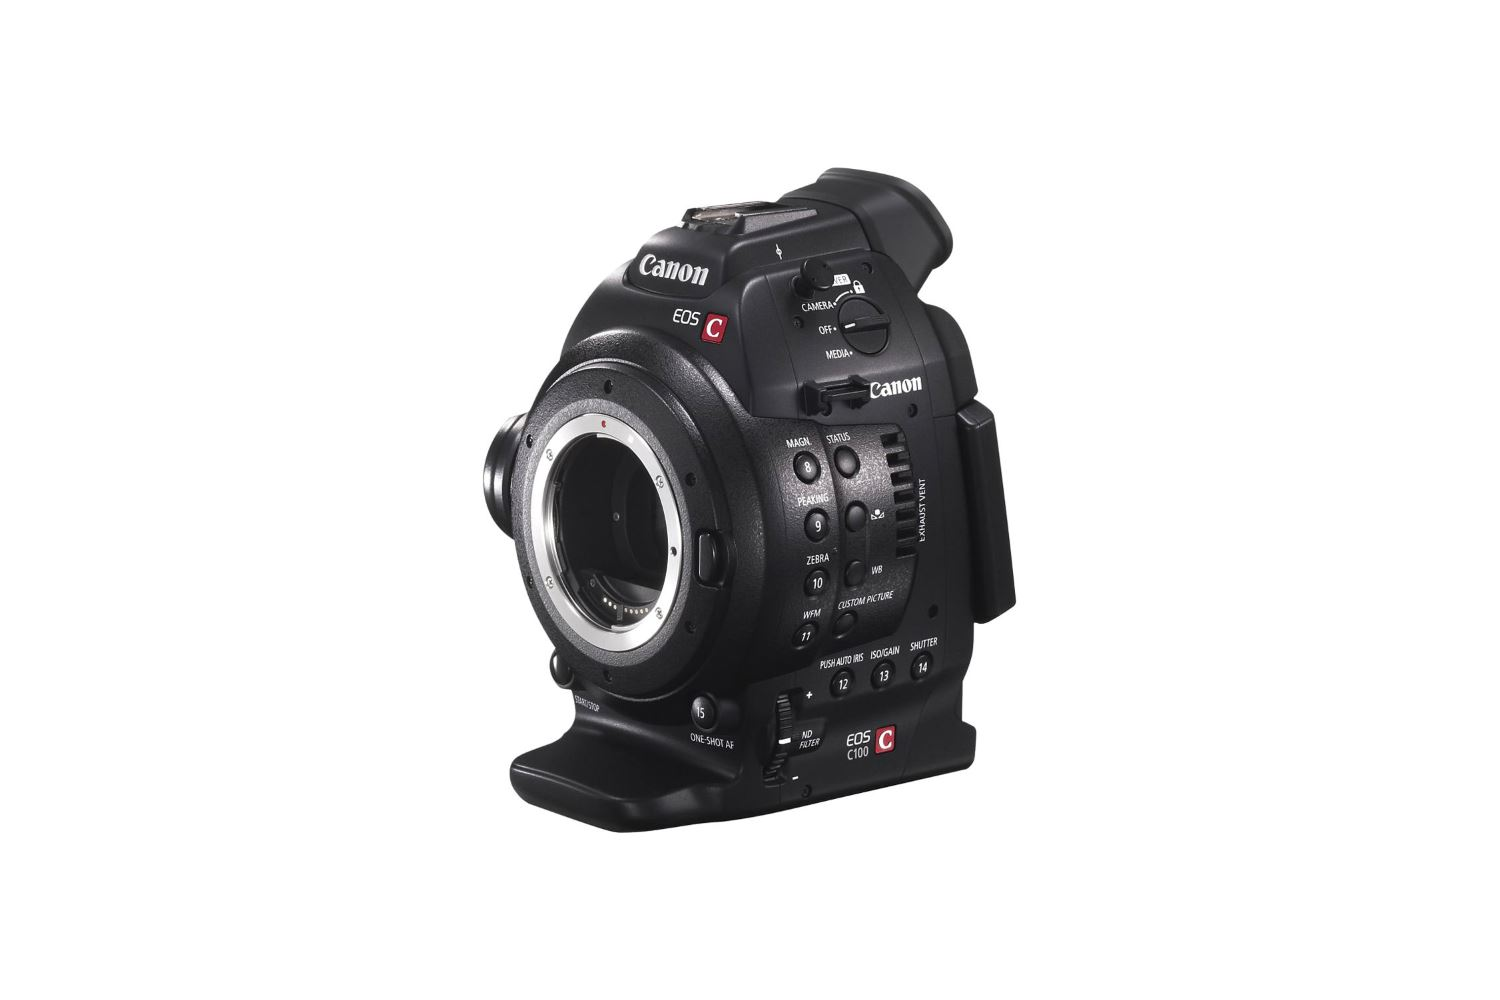 2 camera, FullHD/1080p + Live Streaming - - 2 Canon C100's for wide & tele- Blackmagic ATEM video switcher with lower thirds, title cards & other graphics/videos- 2 operators- Live Streaming to Facebook, YouTube, Twitch, Periscope & more